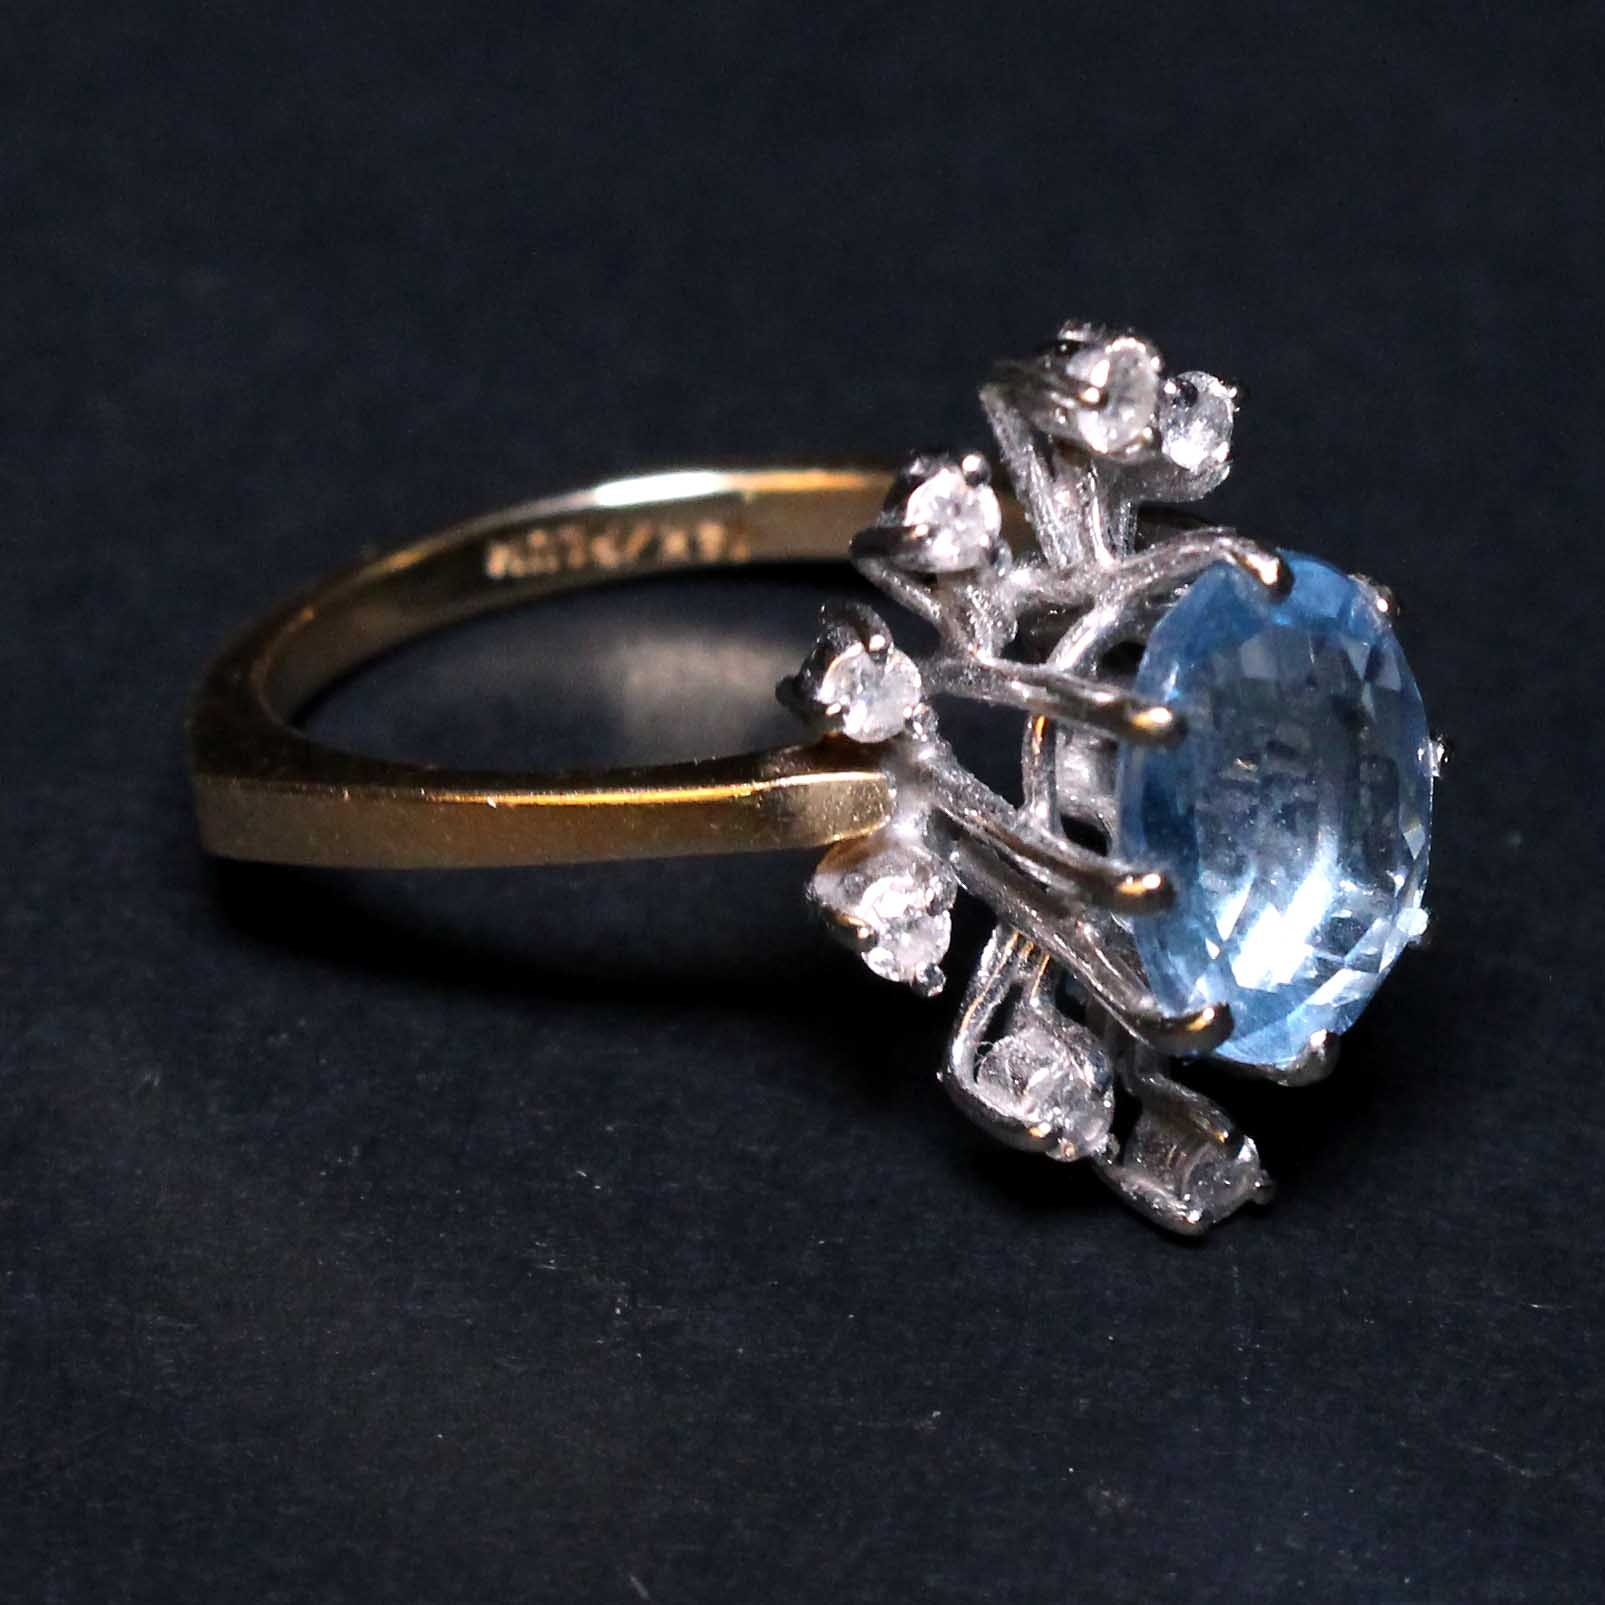 14K Gold Ring with Diamonds and Topaz